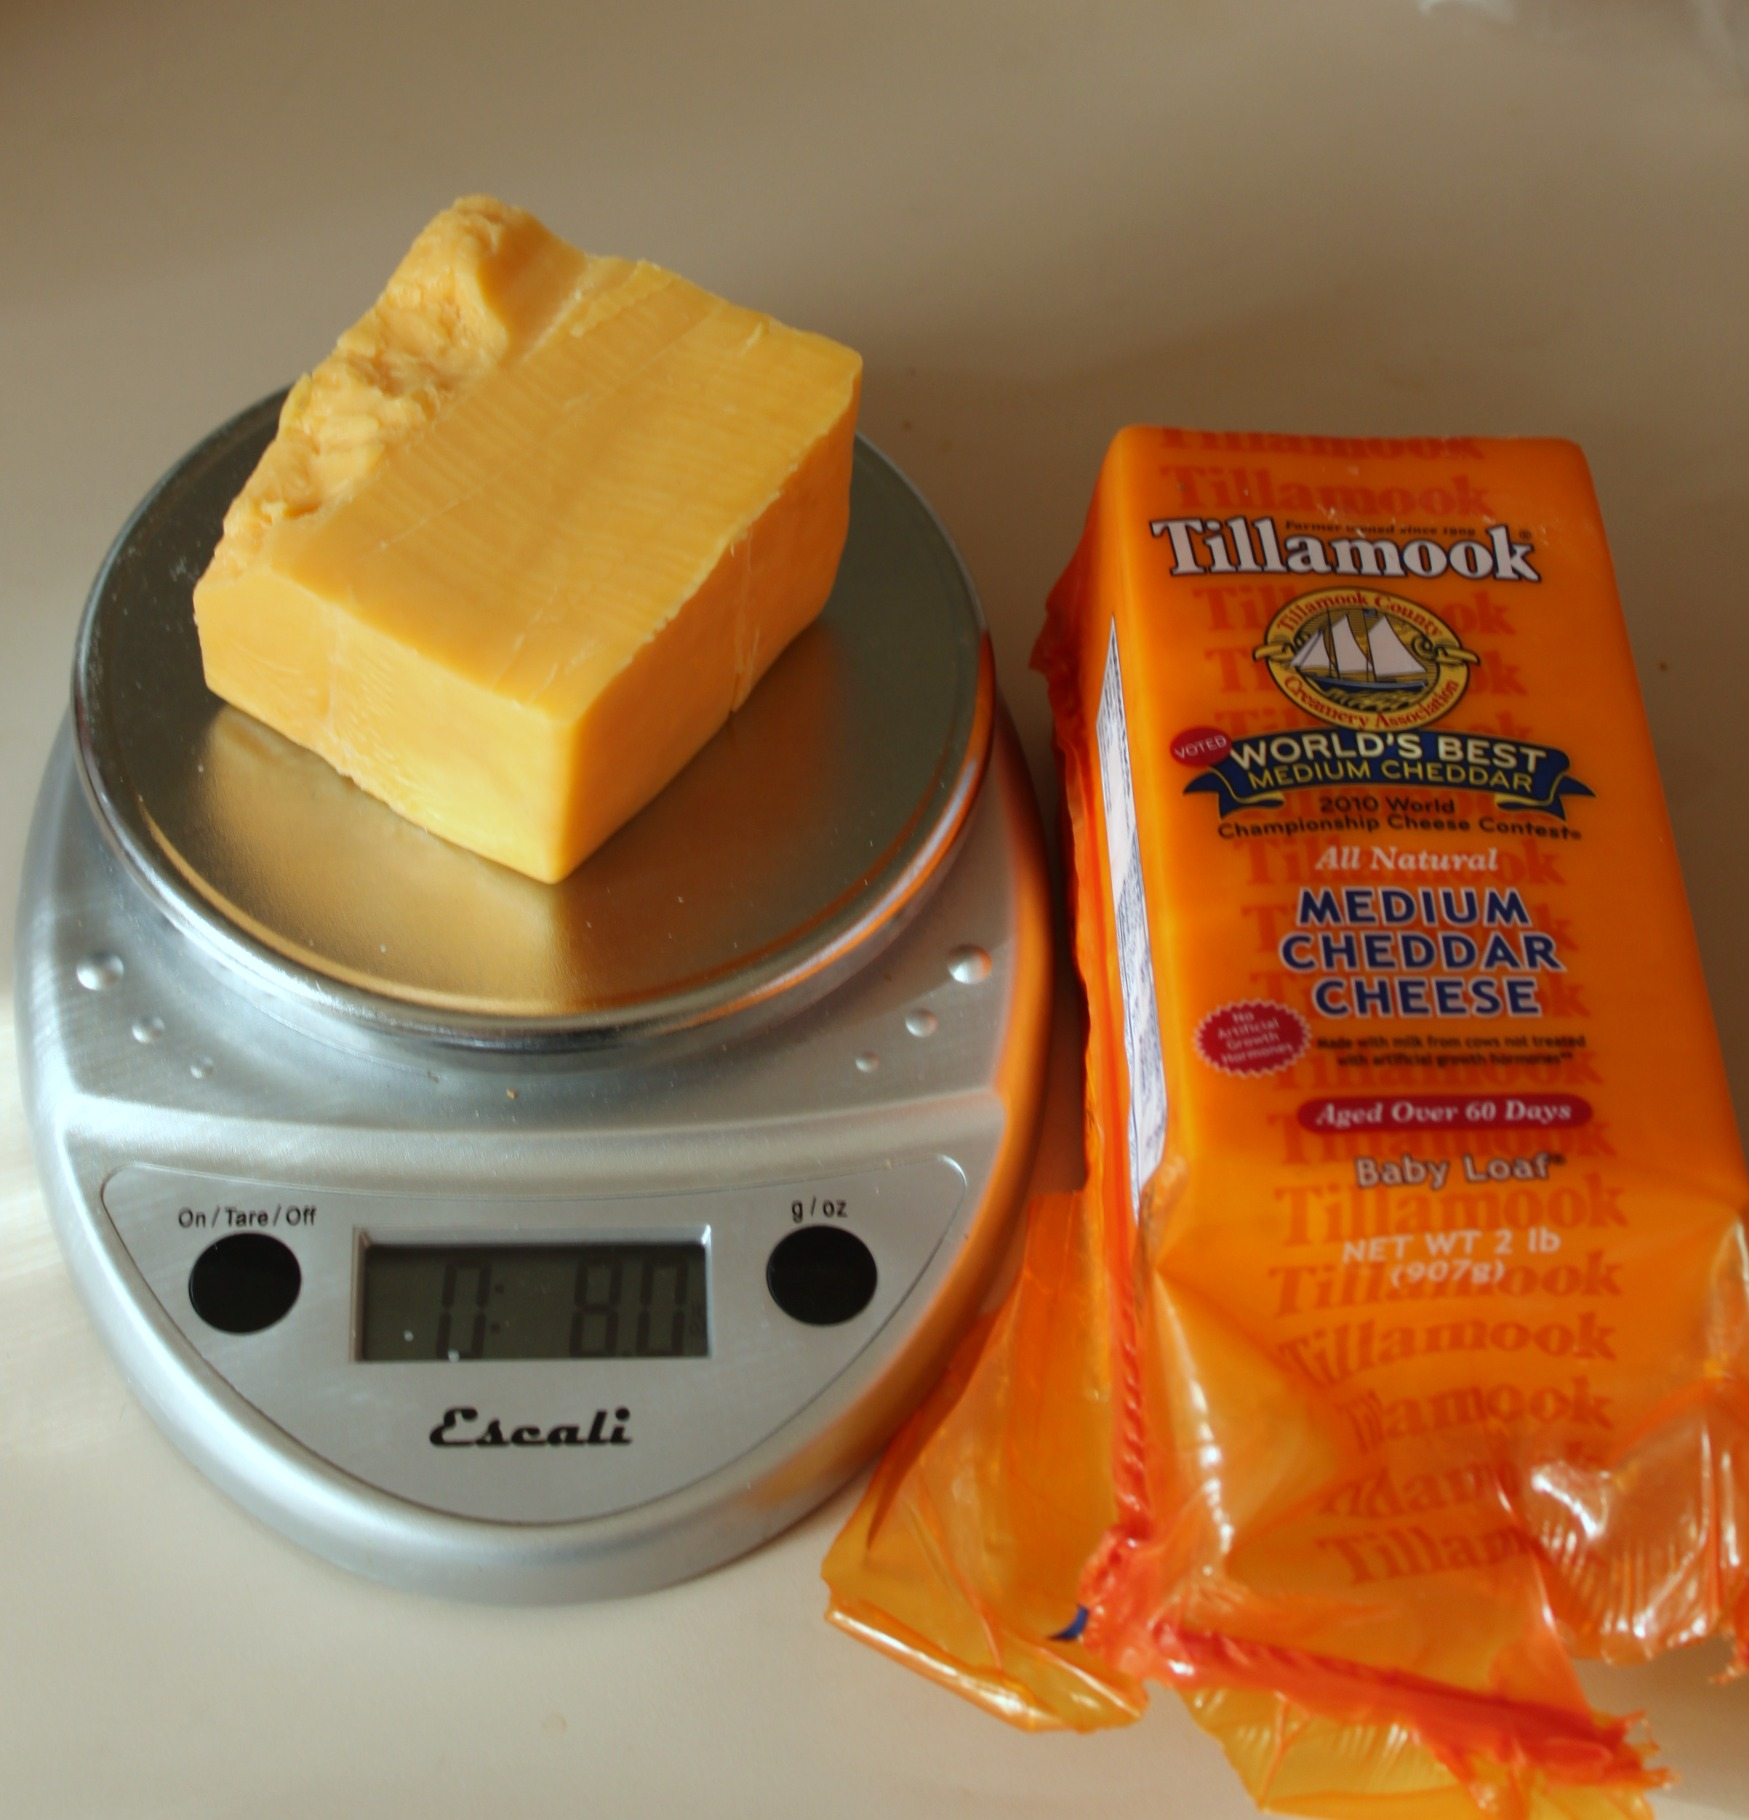 1 ounce of cheese